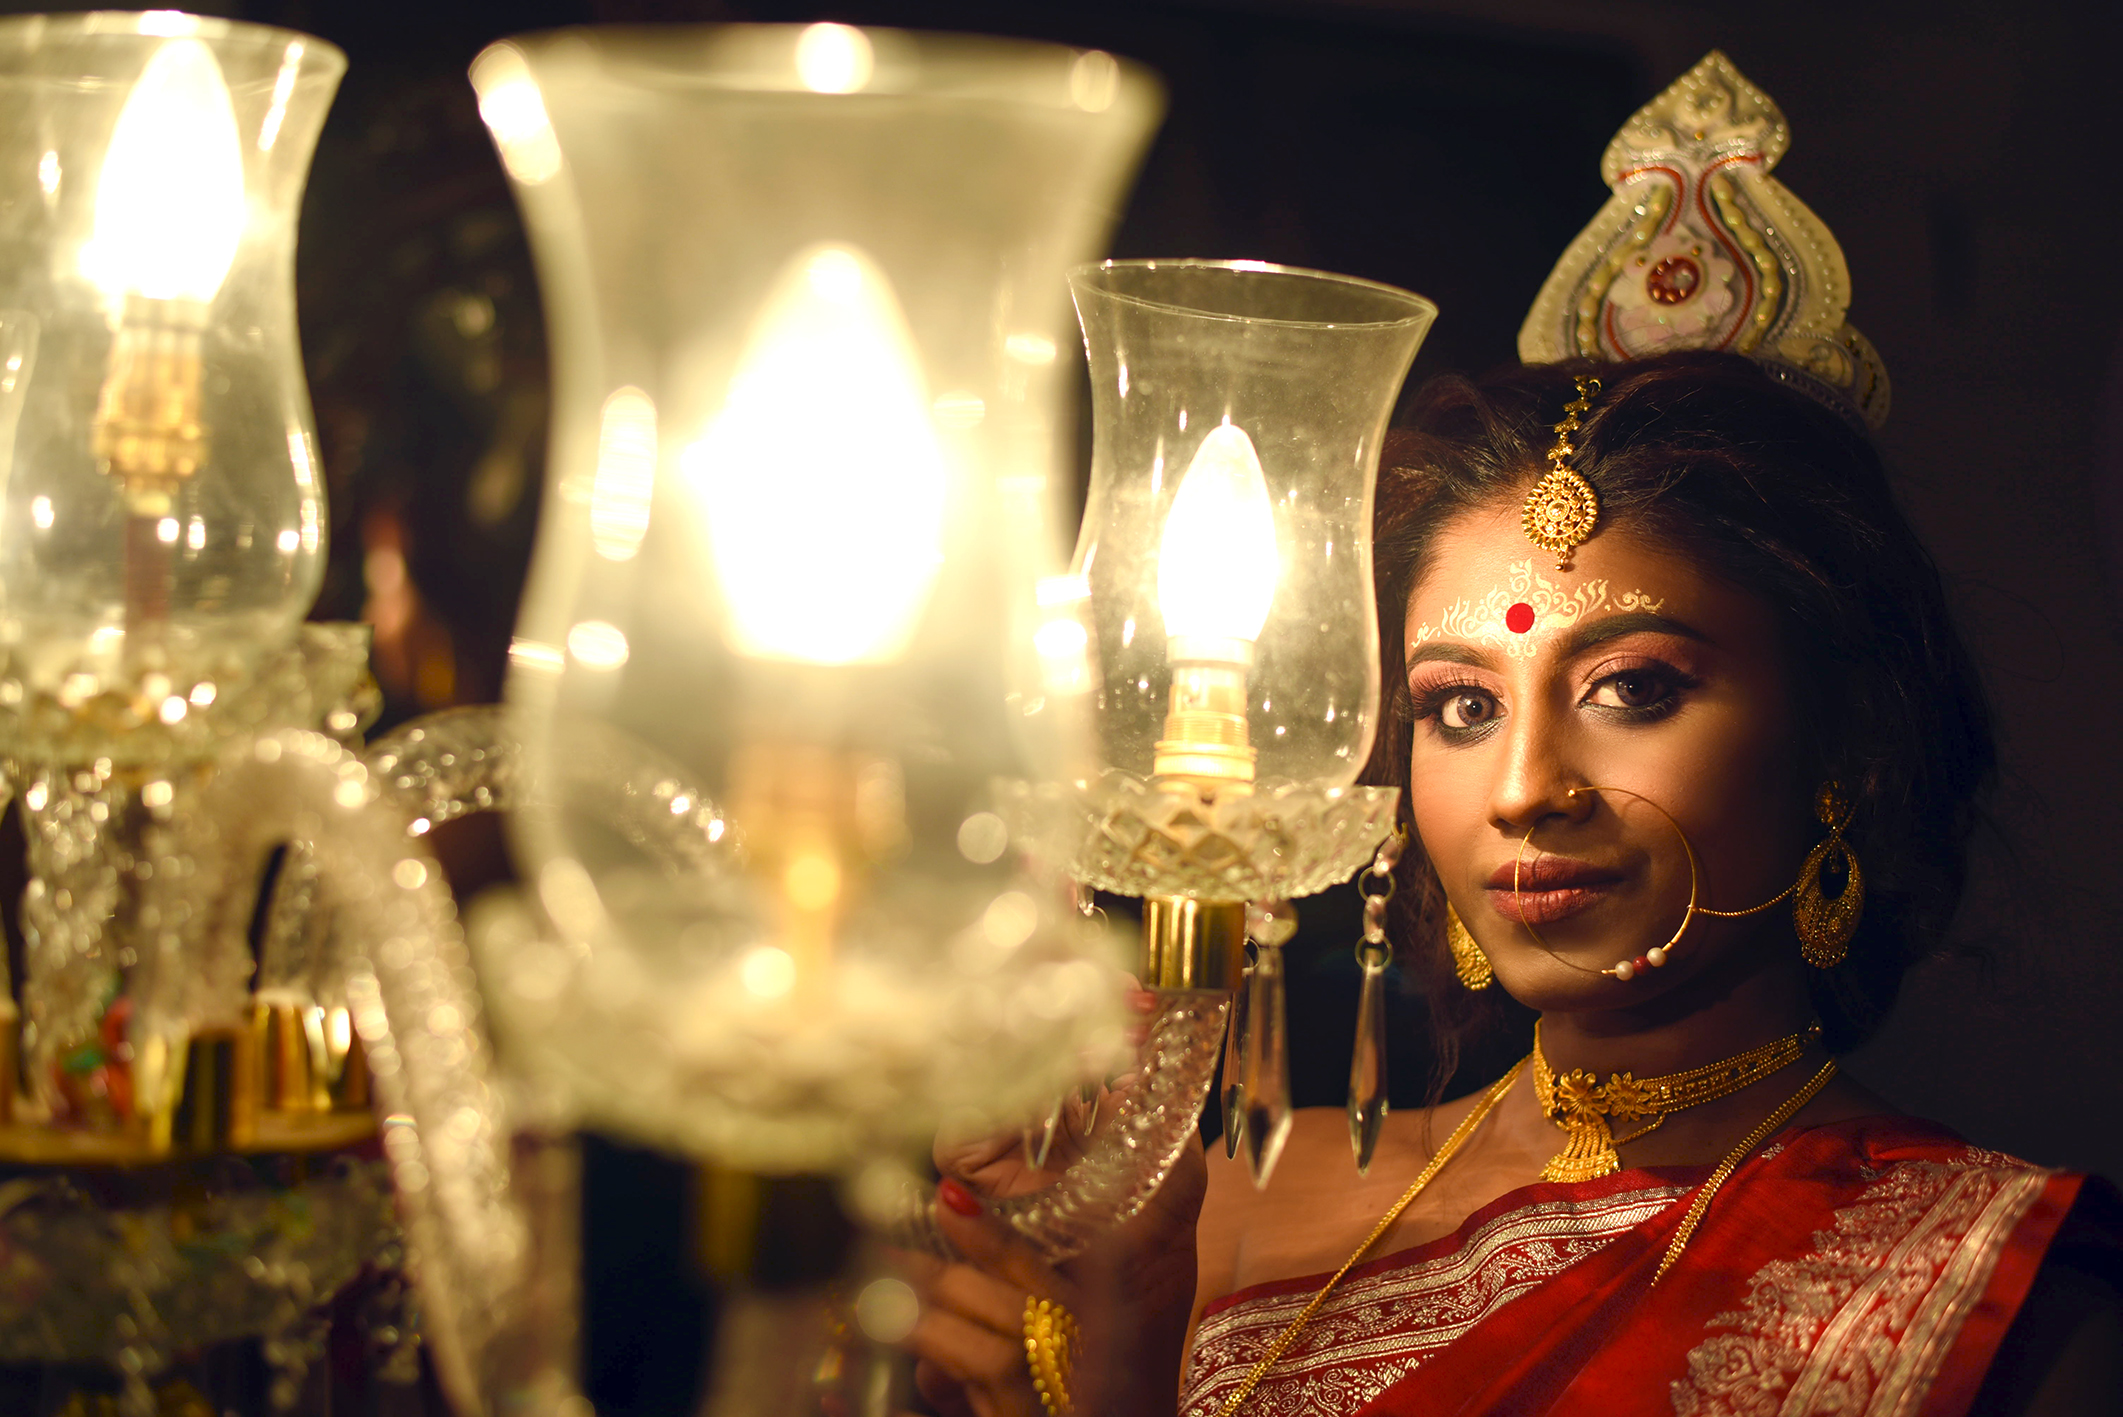 A bride near lamps